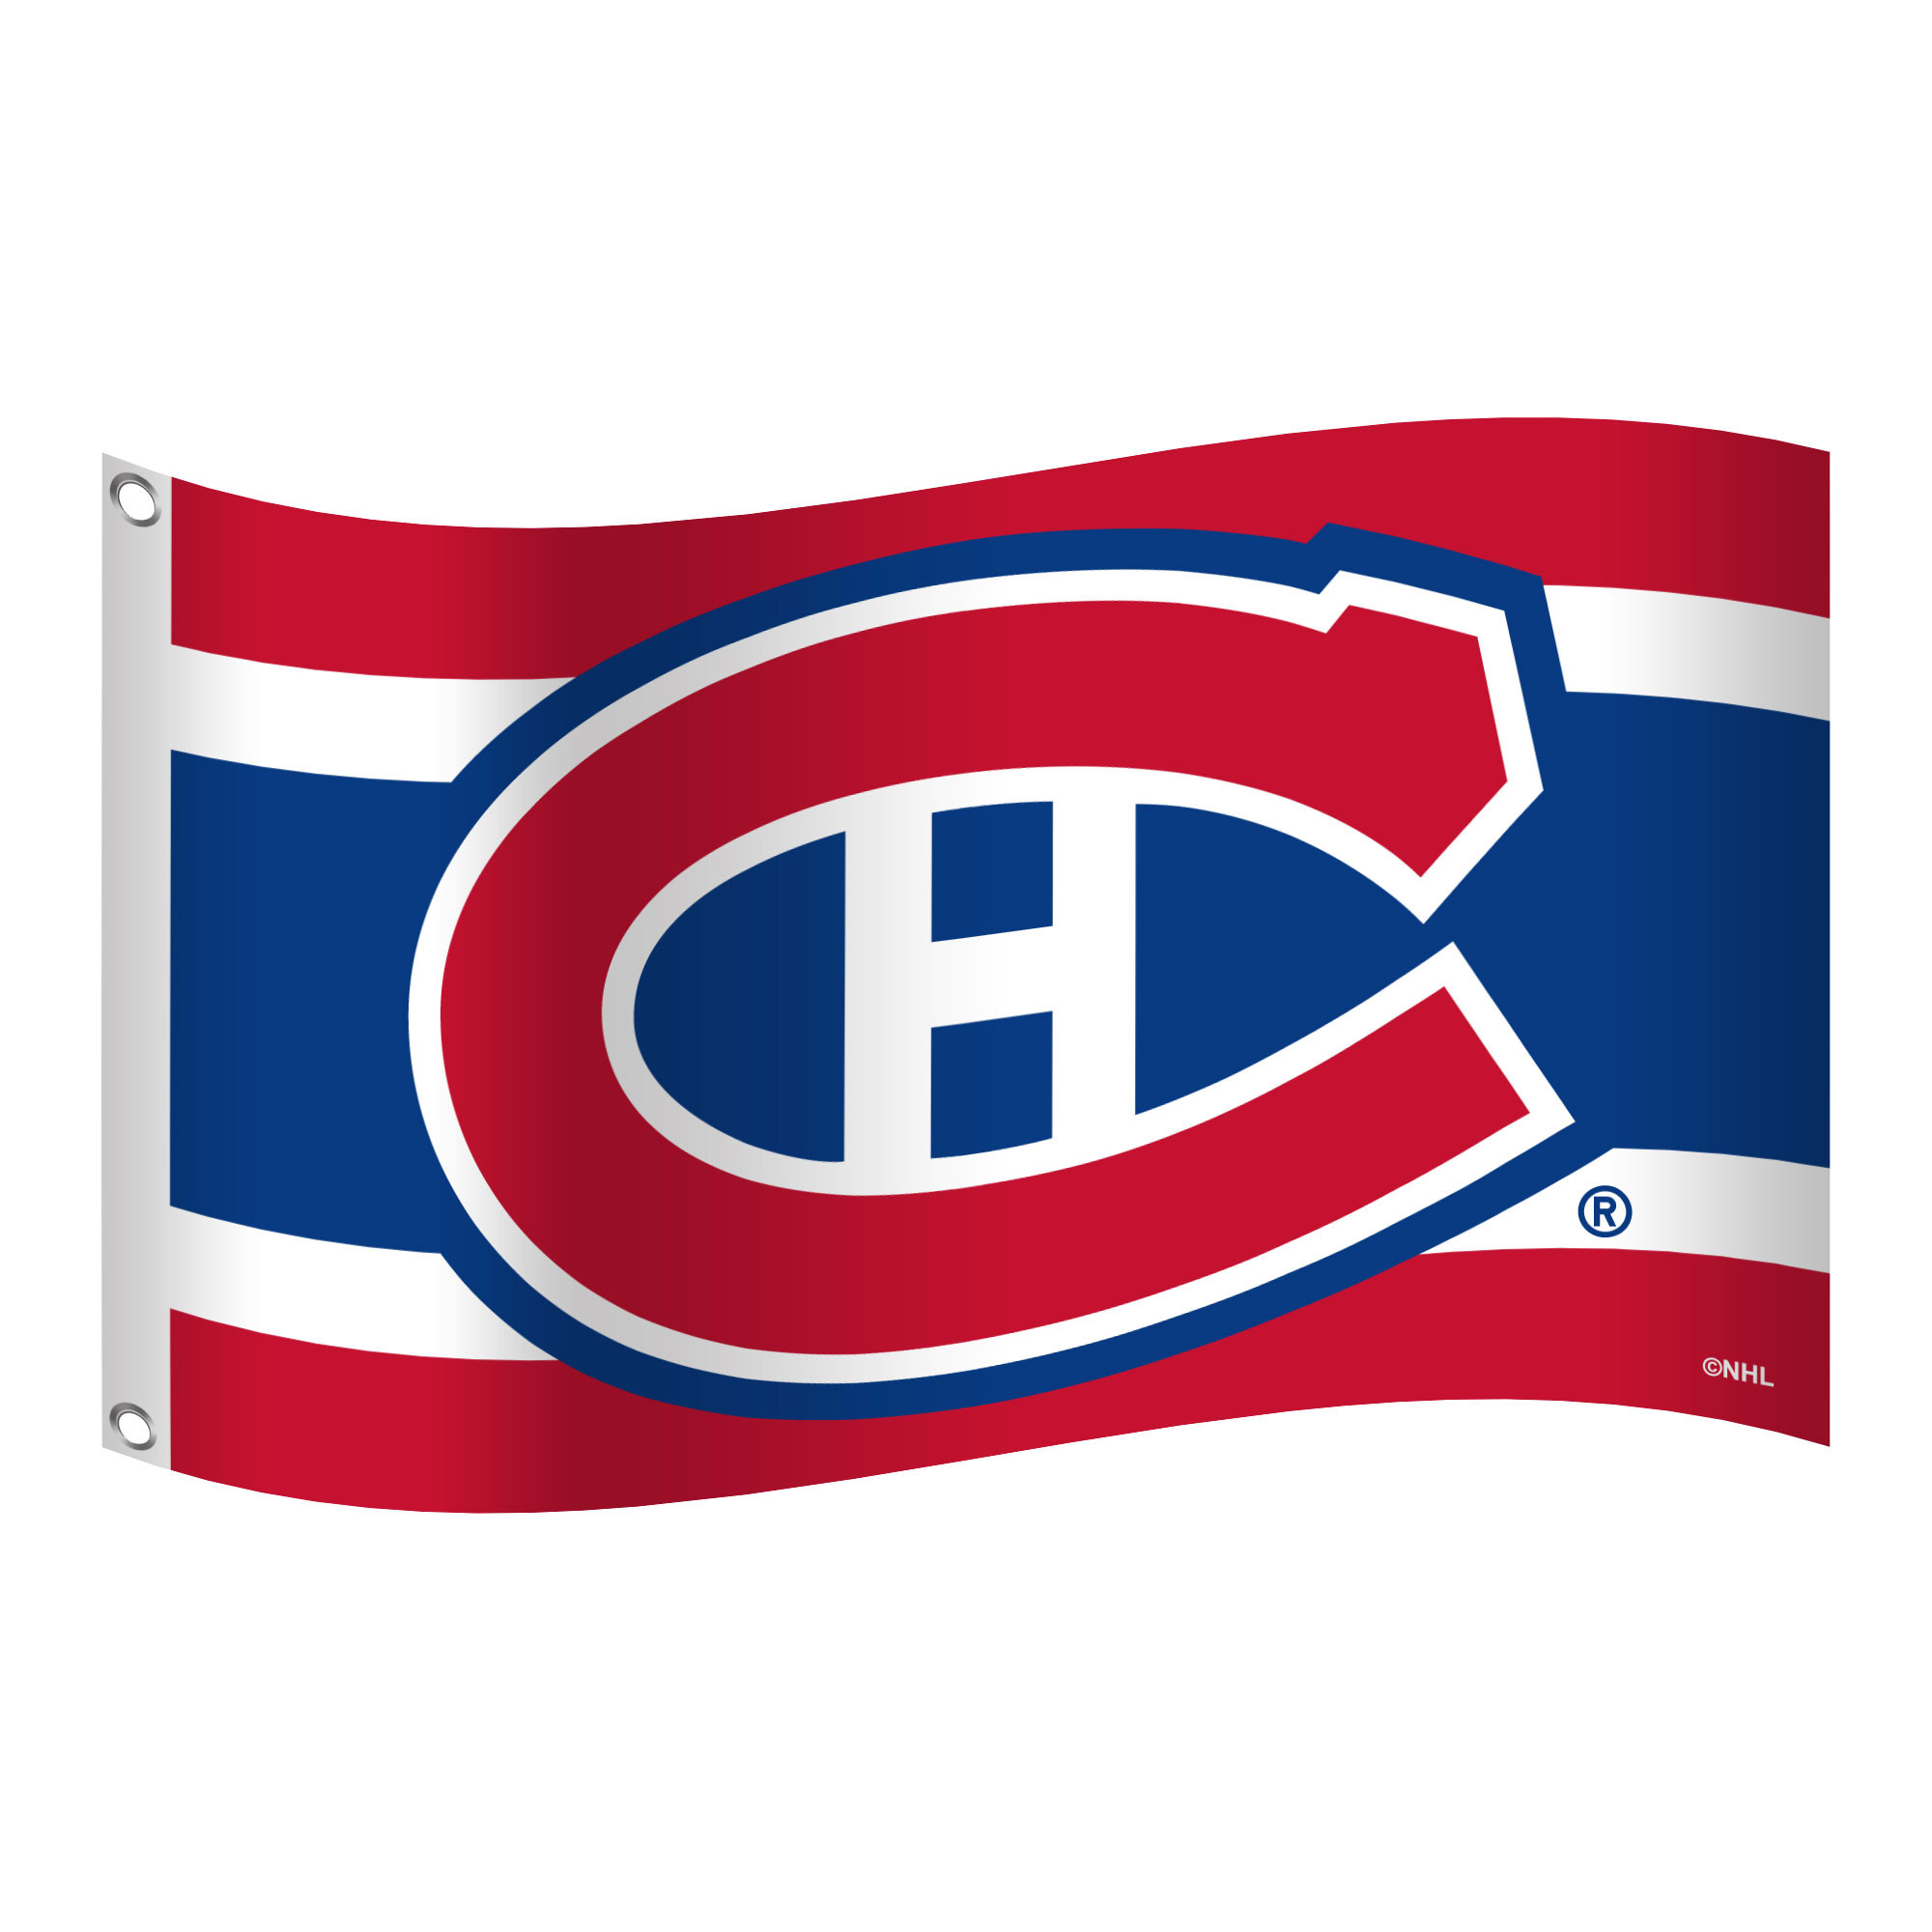 Montreal canadiens logo wallpaper 61 images - Montreal canadians logo ...